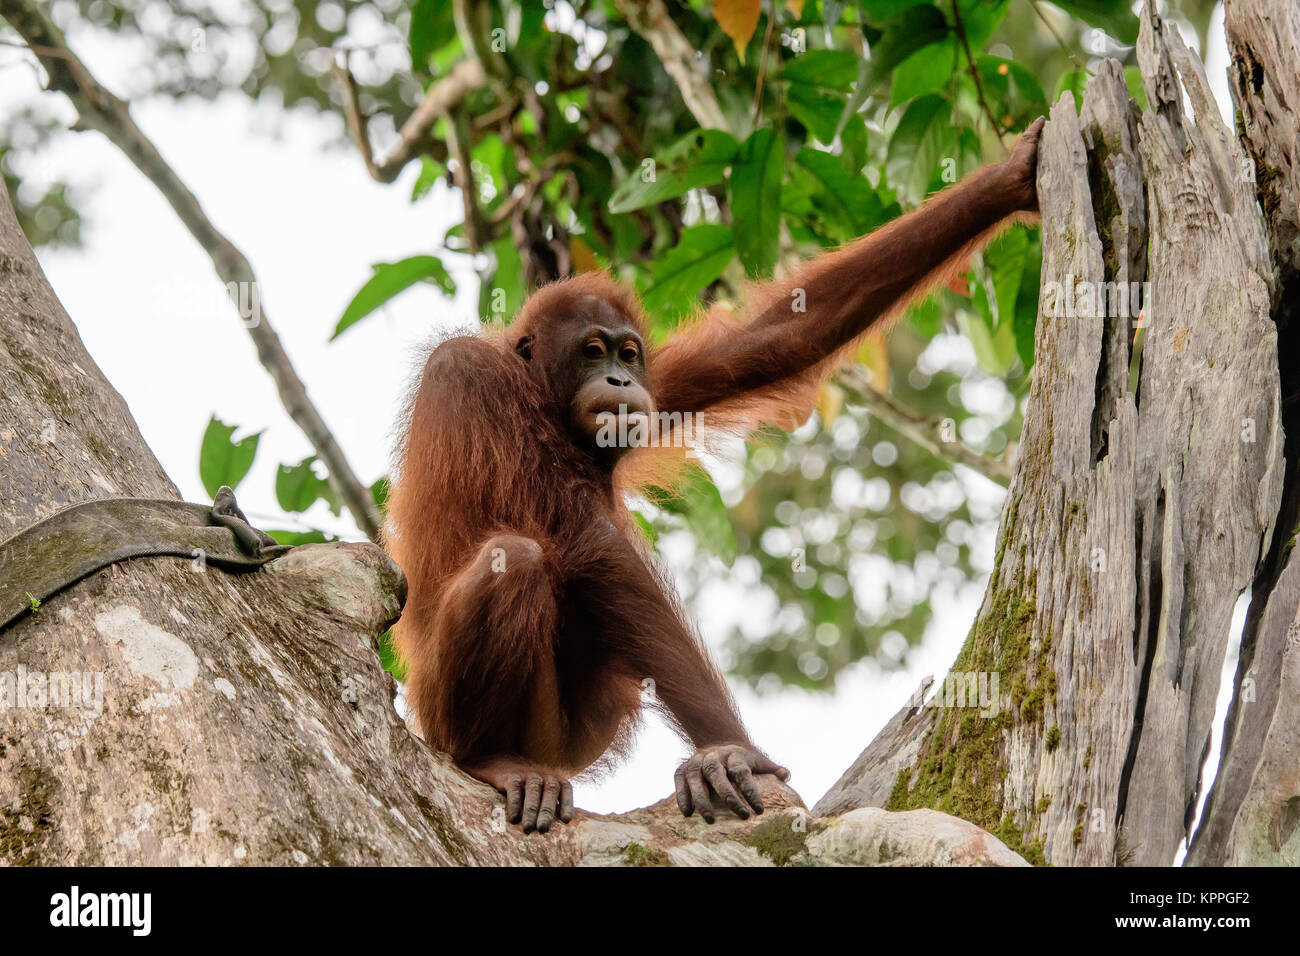 Orangutan watching from his perch in a tree - Stock Image